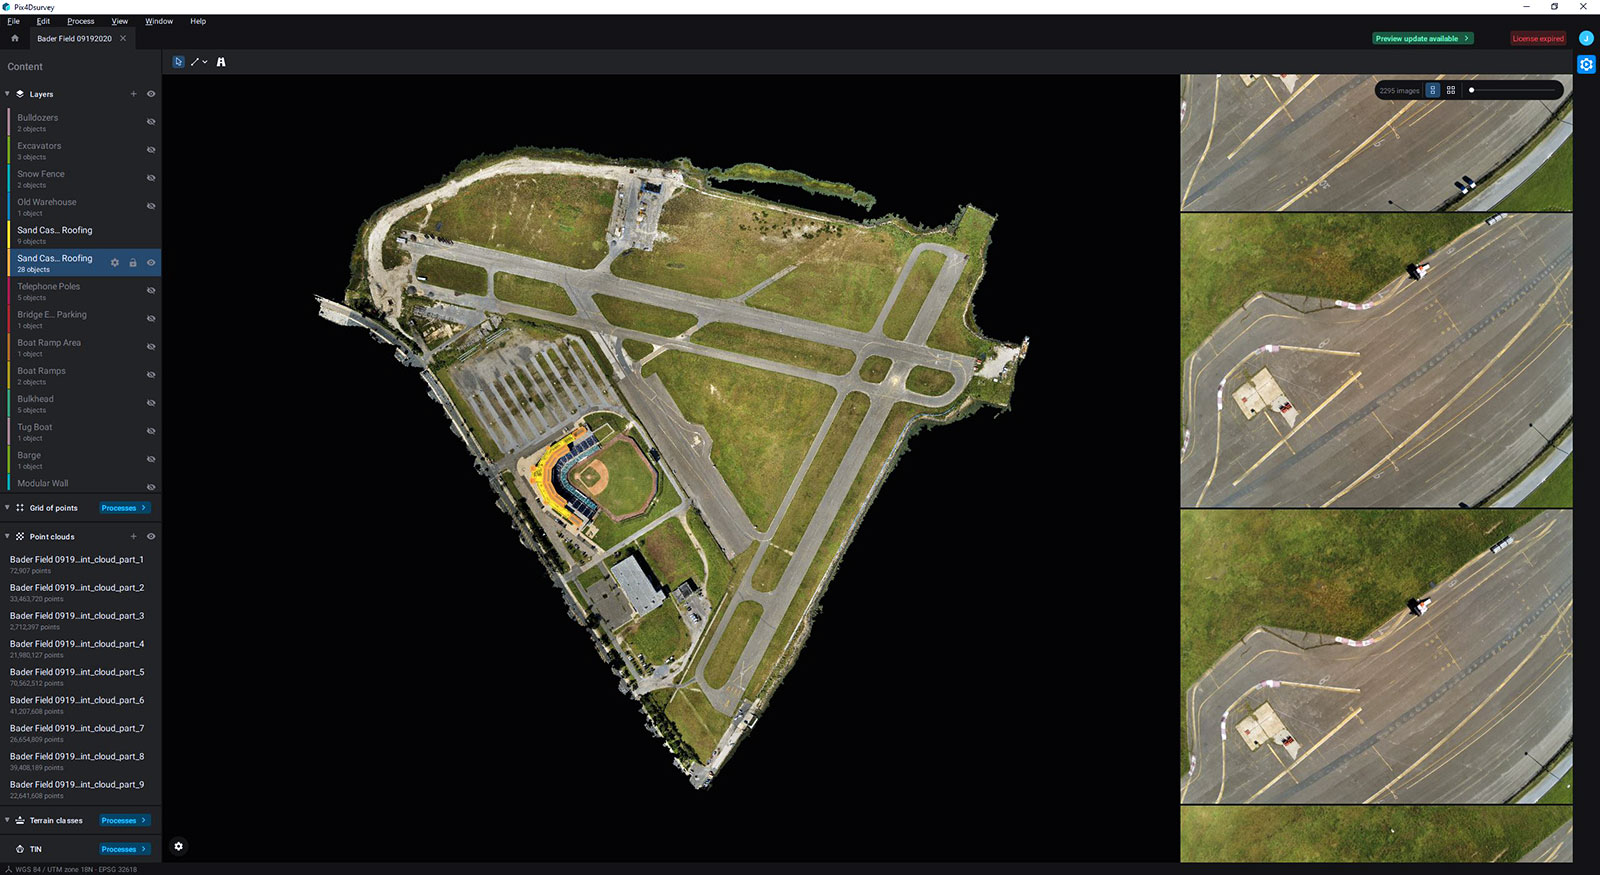 The airfield in Pix4Dsurvey's ijnterface